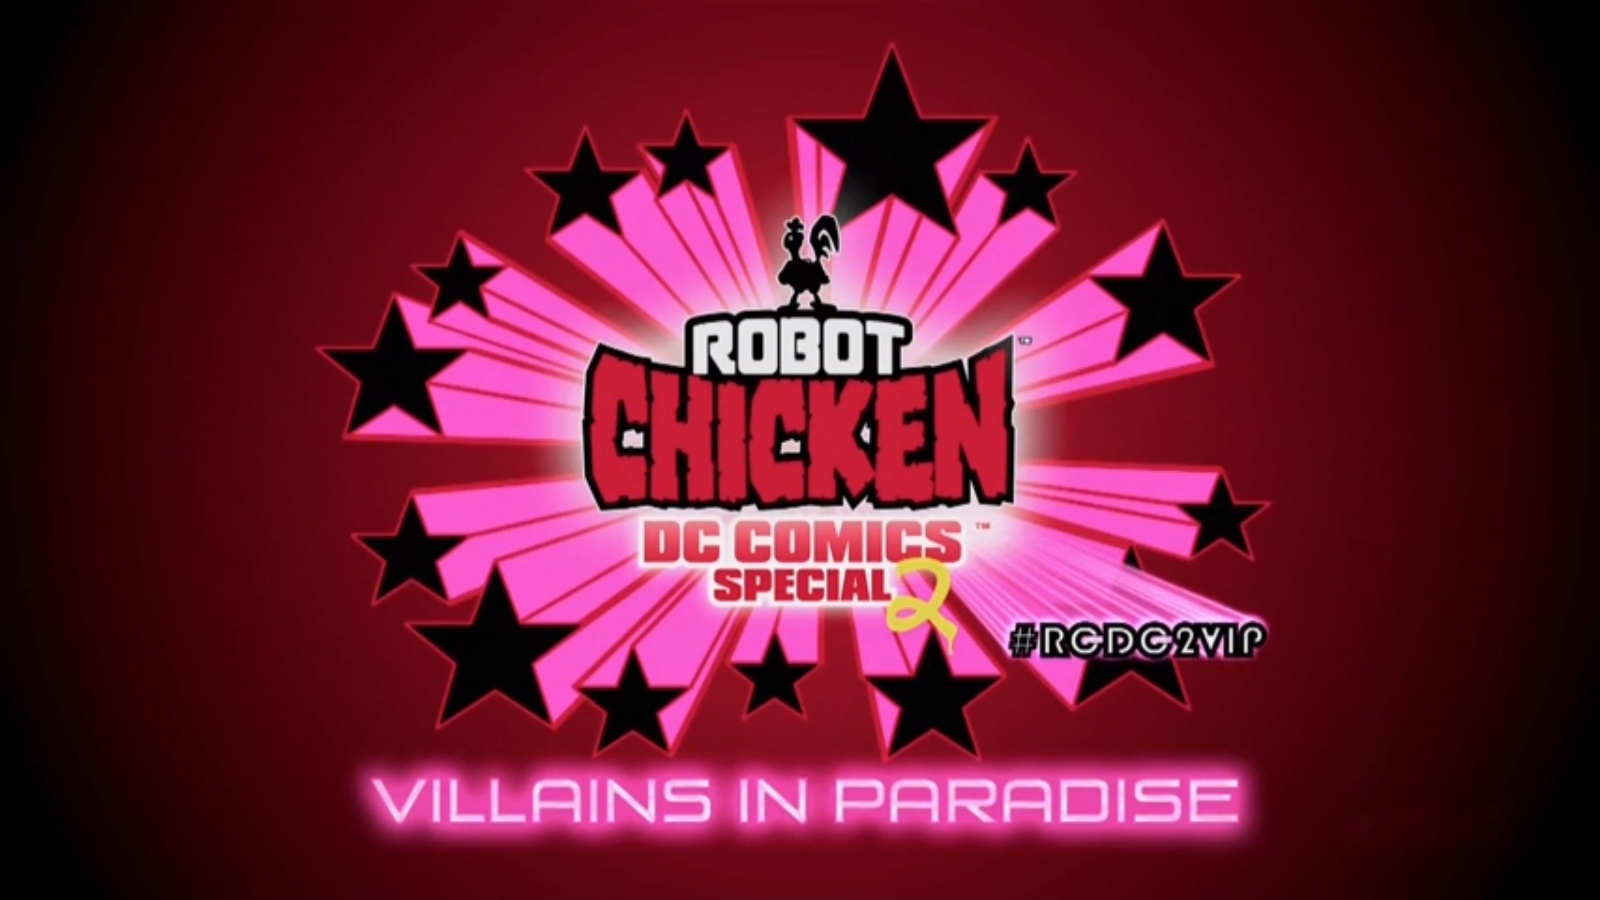 DC Comics Special II: Villains in Paradise